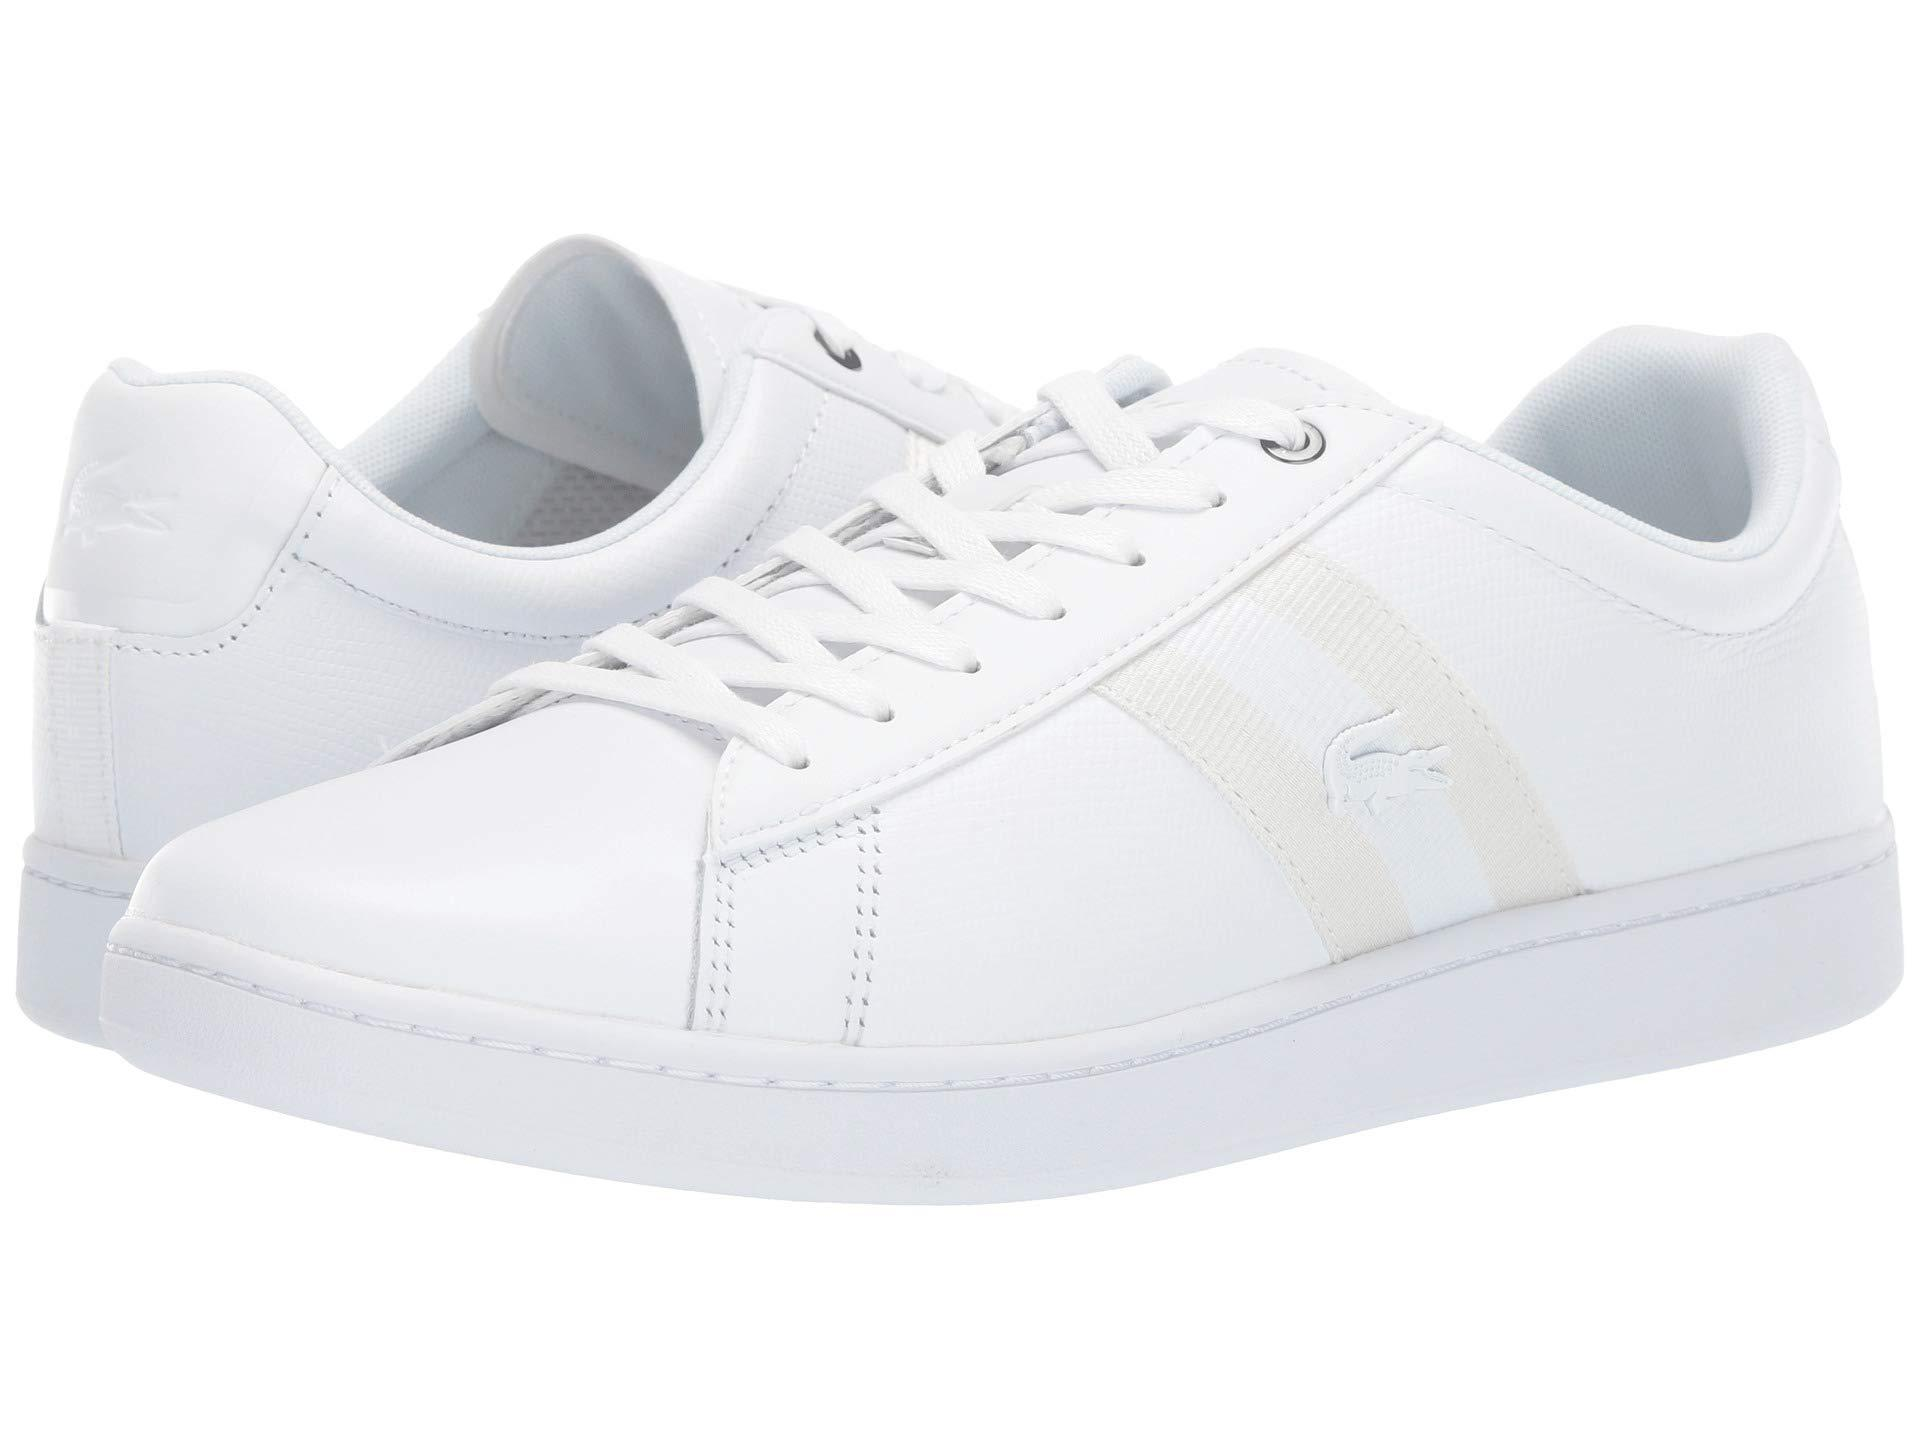 c93f916c9e Lacoste Carnaby Evo 119 5 Sma (white/white) Men's Shoes in White for ...